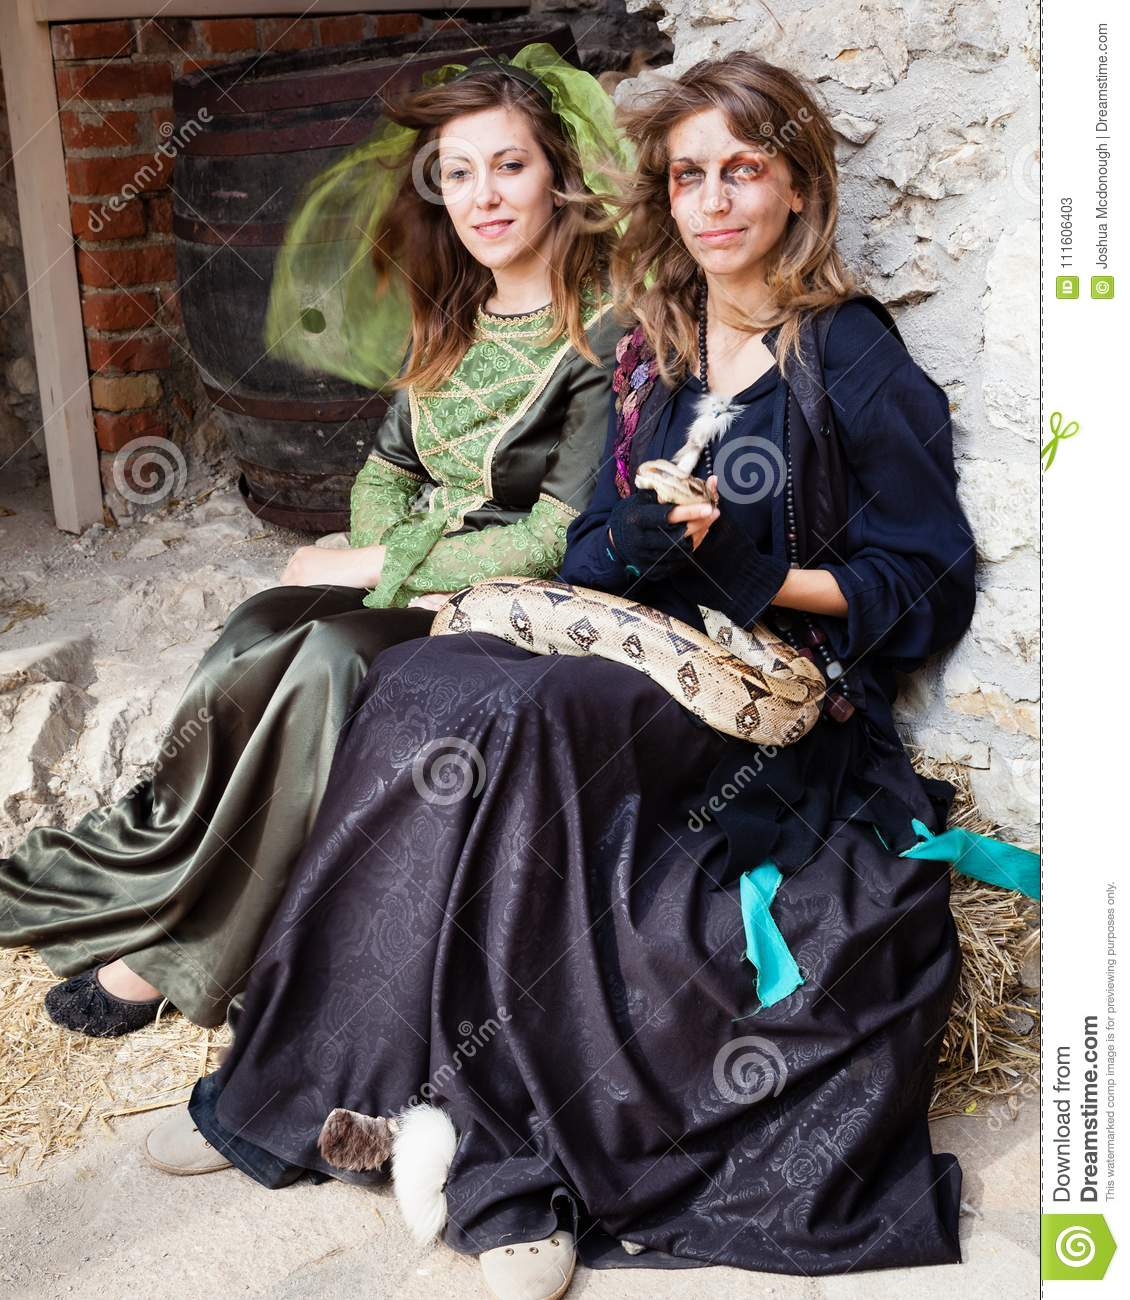 Girls in Middle Eval Clothes and Snake at Castle